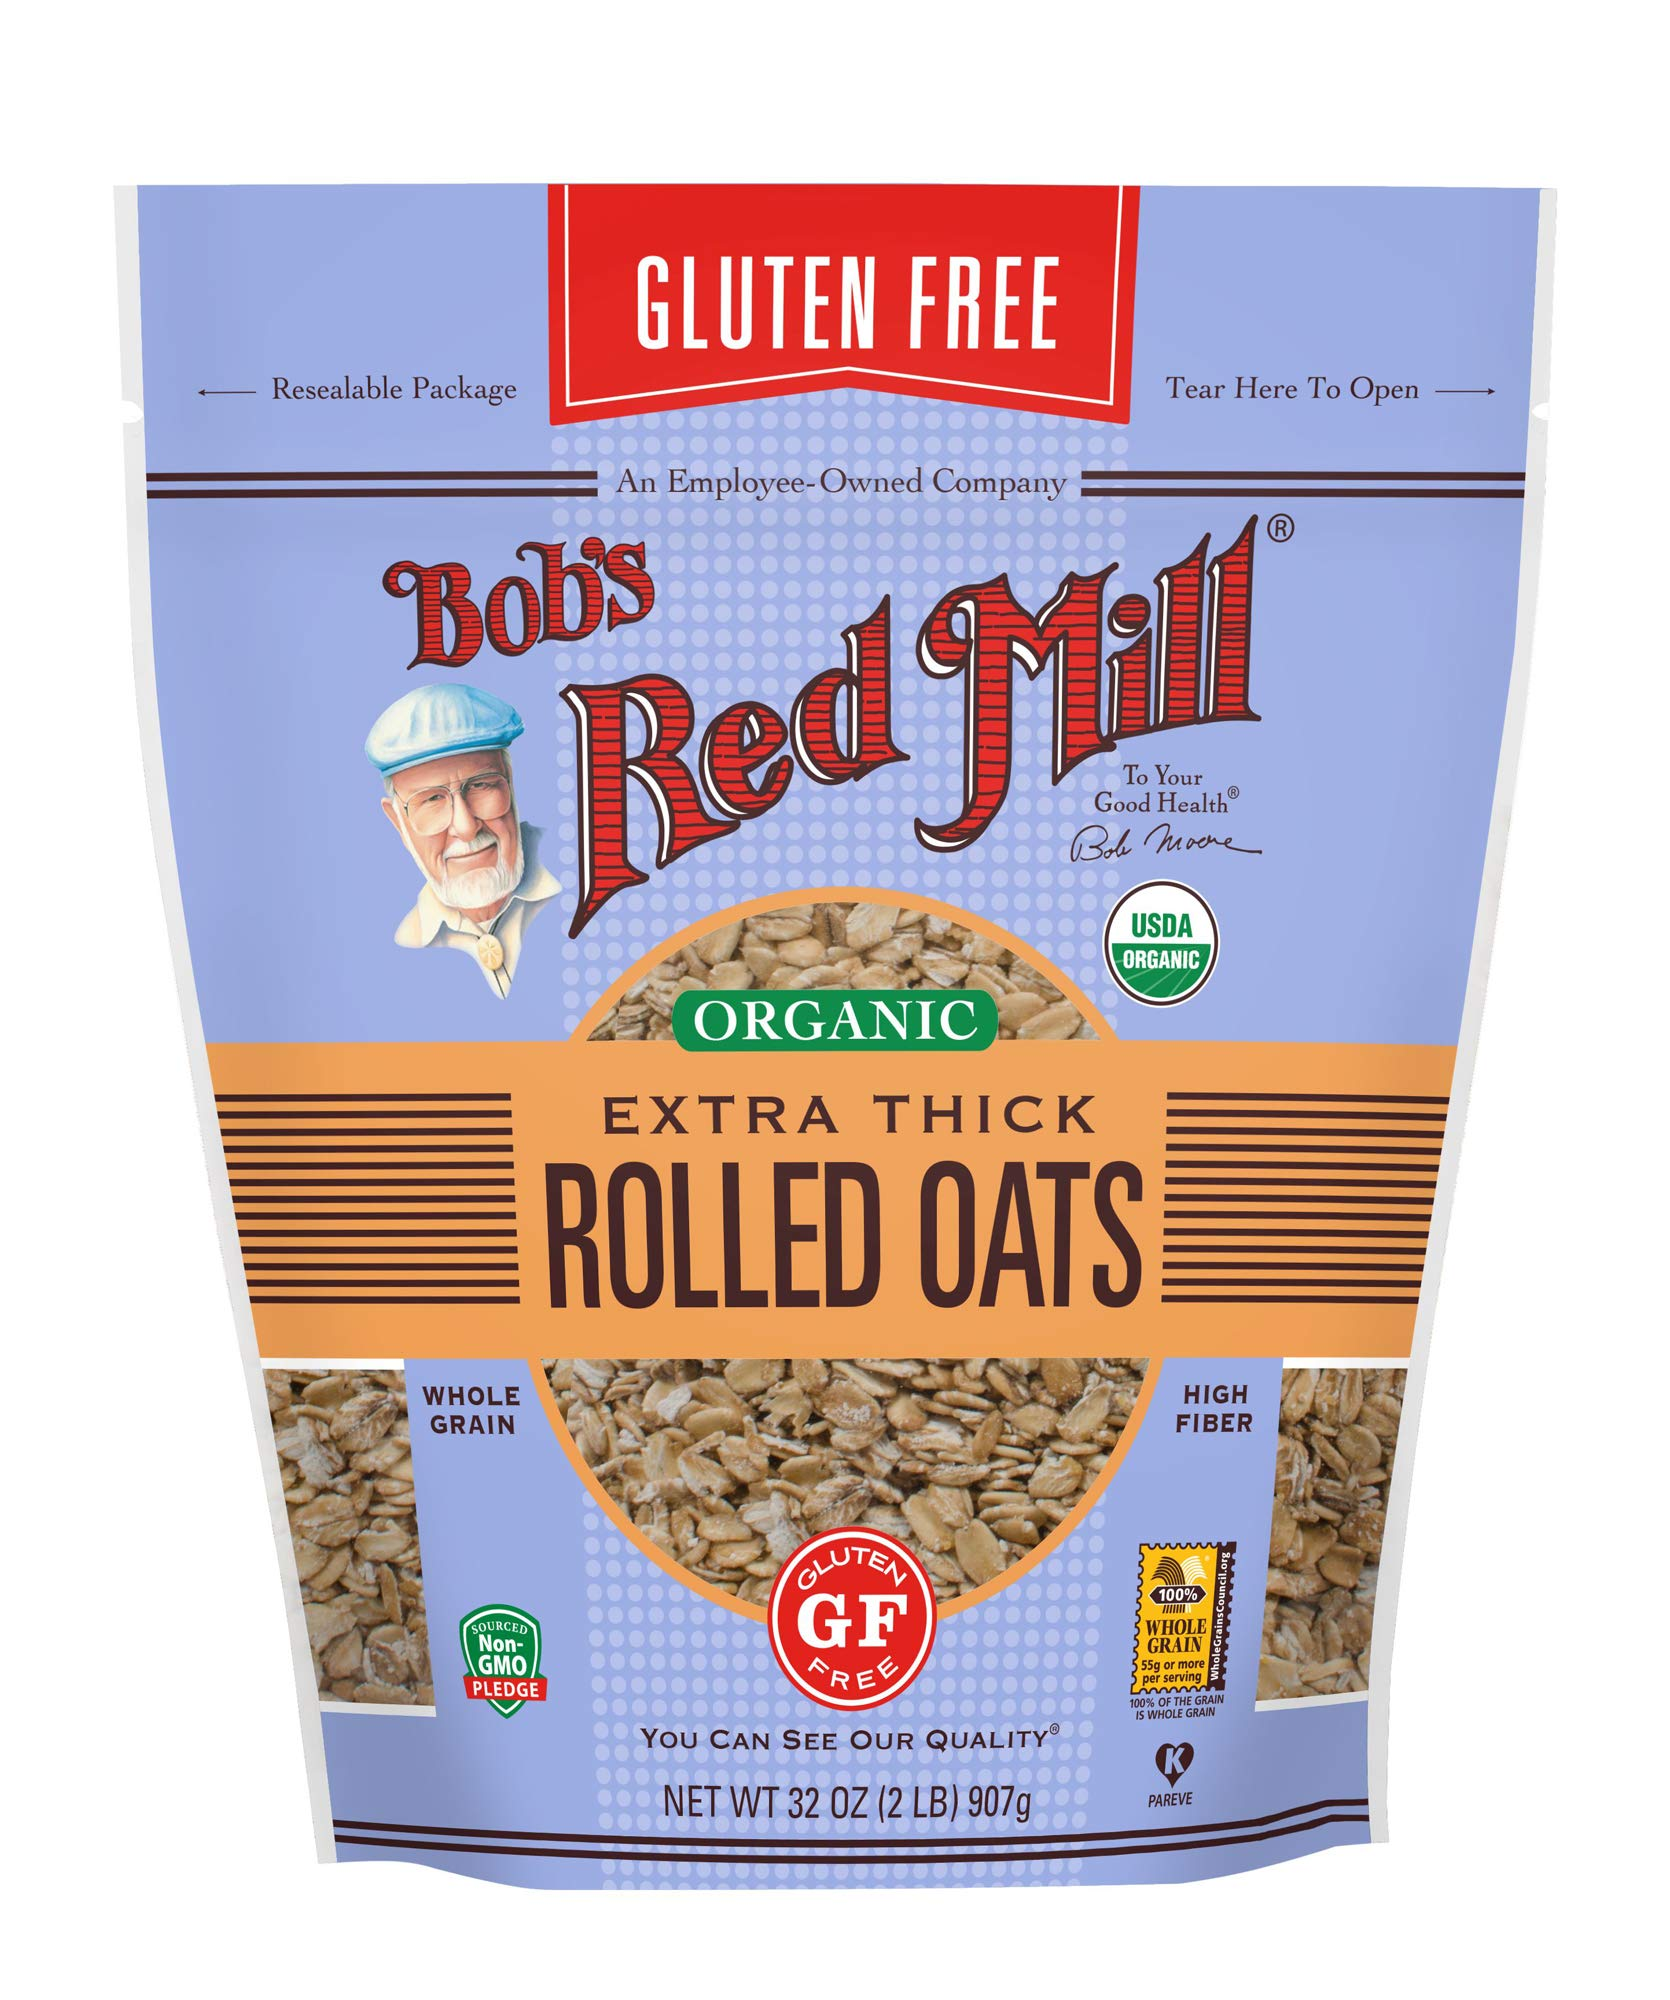 Bob's Red Mill Gluten Free Organic Extra Thick Rolled Oats, 32 Oz (4 Pack) by Bob's Red Mill